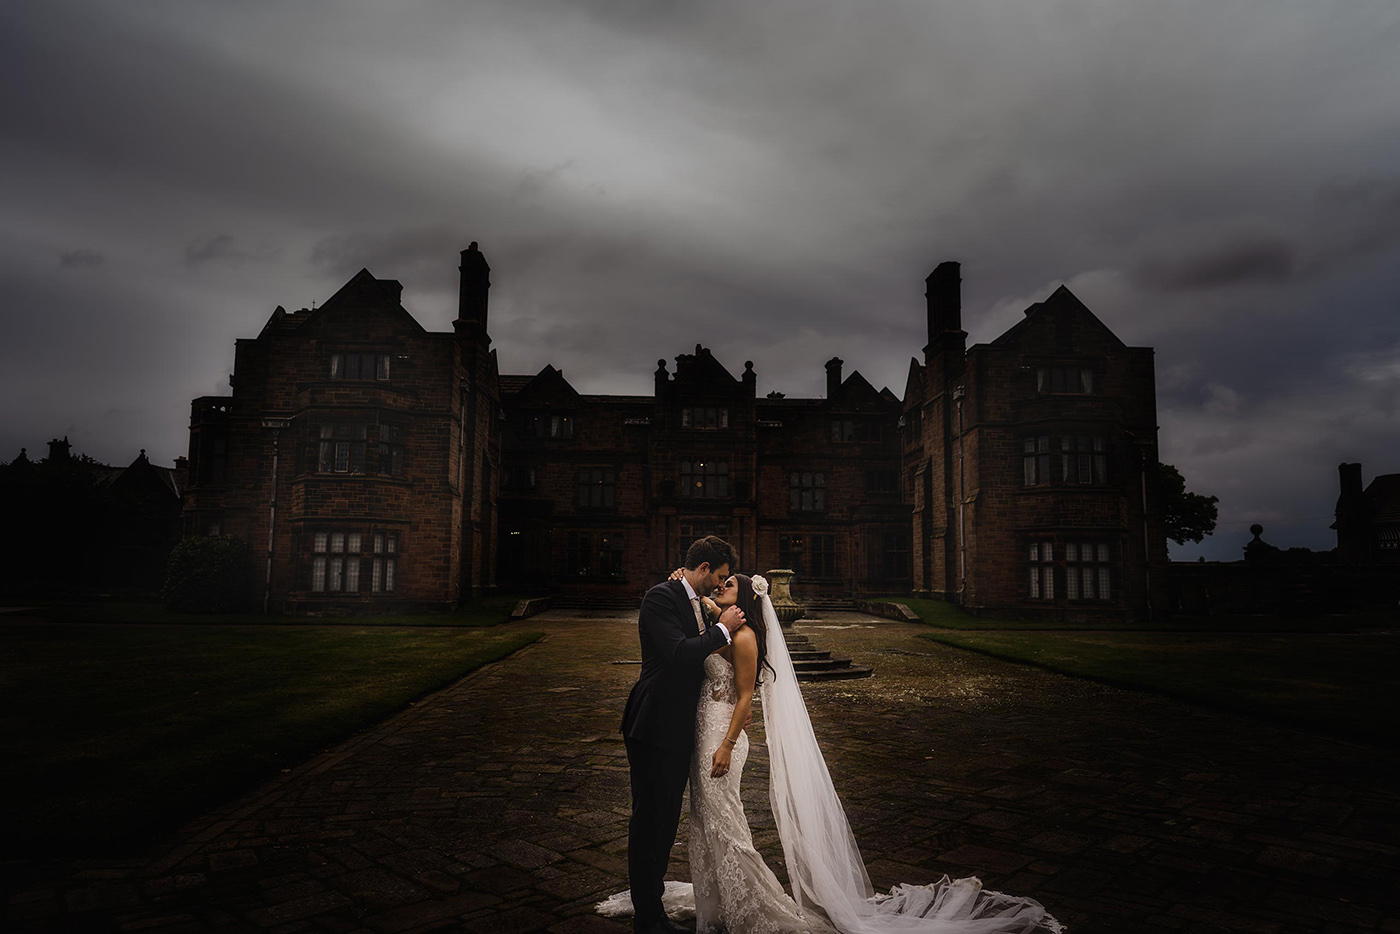 a stunning scene as a bride and groom are captured at Thornton Manor